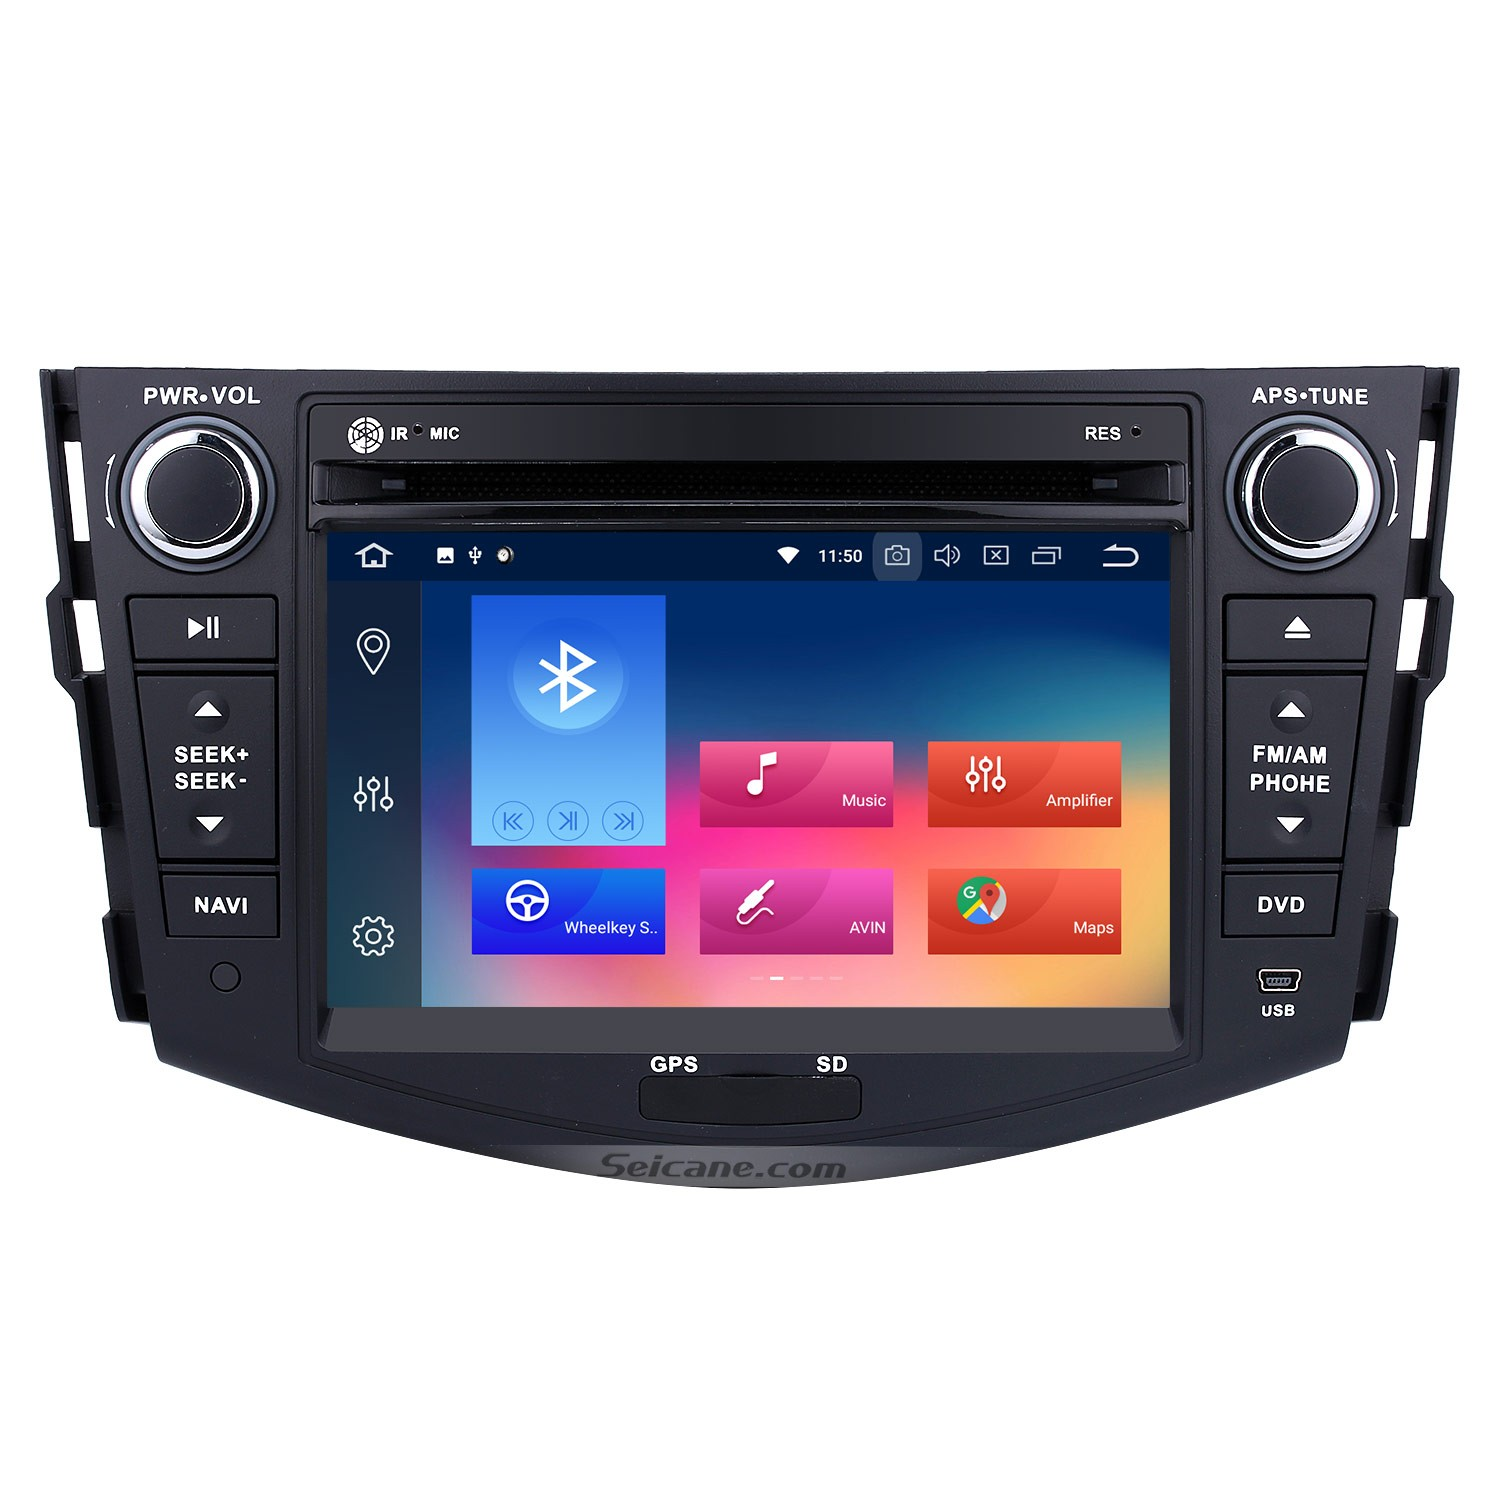 hight resolution of android 9 0 aftermarket radio for 2006 2012 toyota rav4 with gps navigation hd 1024